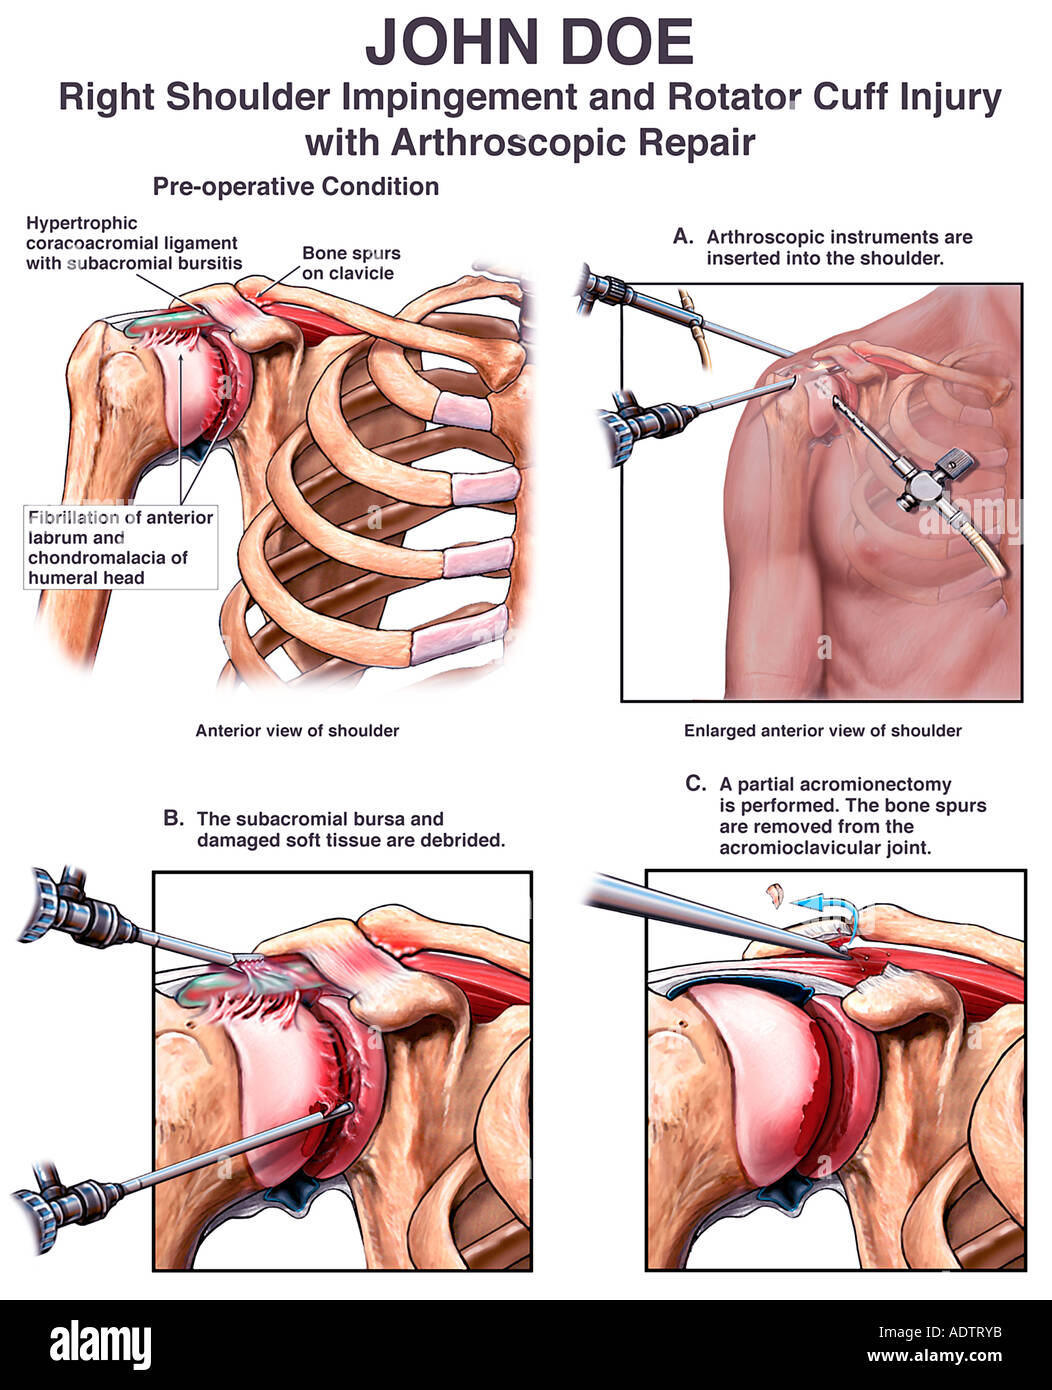 Right Shoulder Impingement and Rotator Cuff Injury with Arthroscopic ...